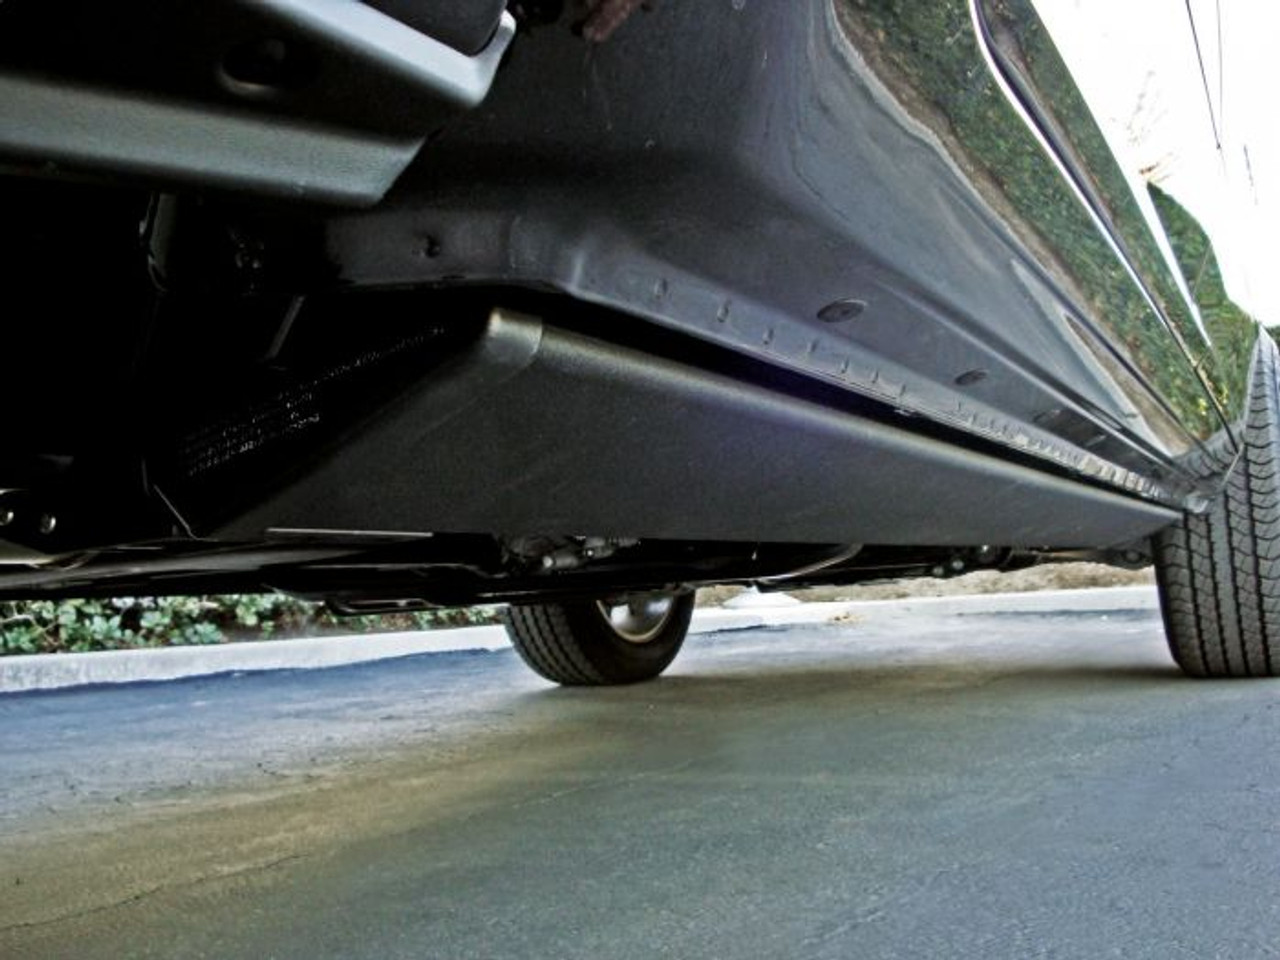 AMP RESEARCH 76138-01A POWERSTEP ELECTRIC RUNNING BOARDS PLUG N' PLAY SYSTEM FOR 2013-2015 RAM 1500/2500/3500 (ALL CABS)